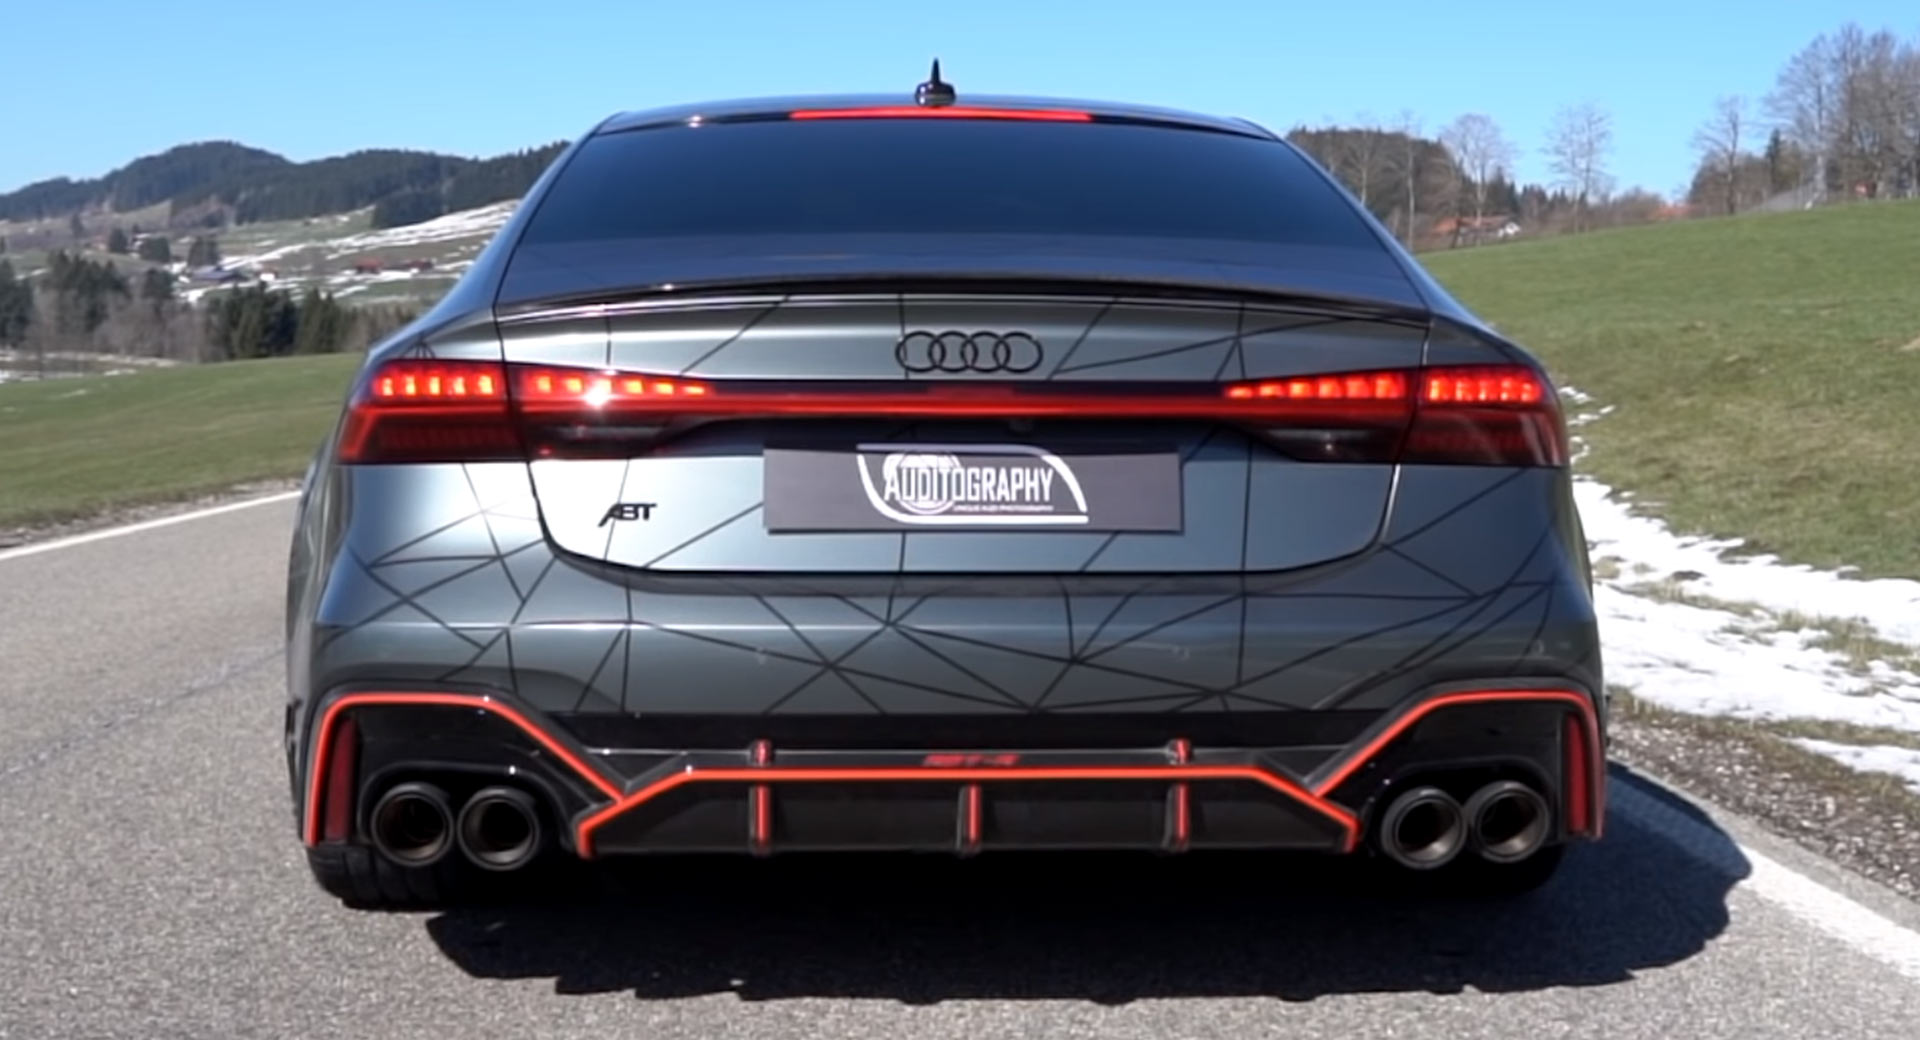 Abt S Audi Rs6 R And Rs7 R Are Beastly Creations And We Want Them Both Carscoops